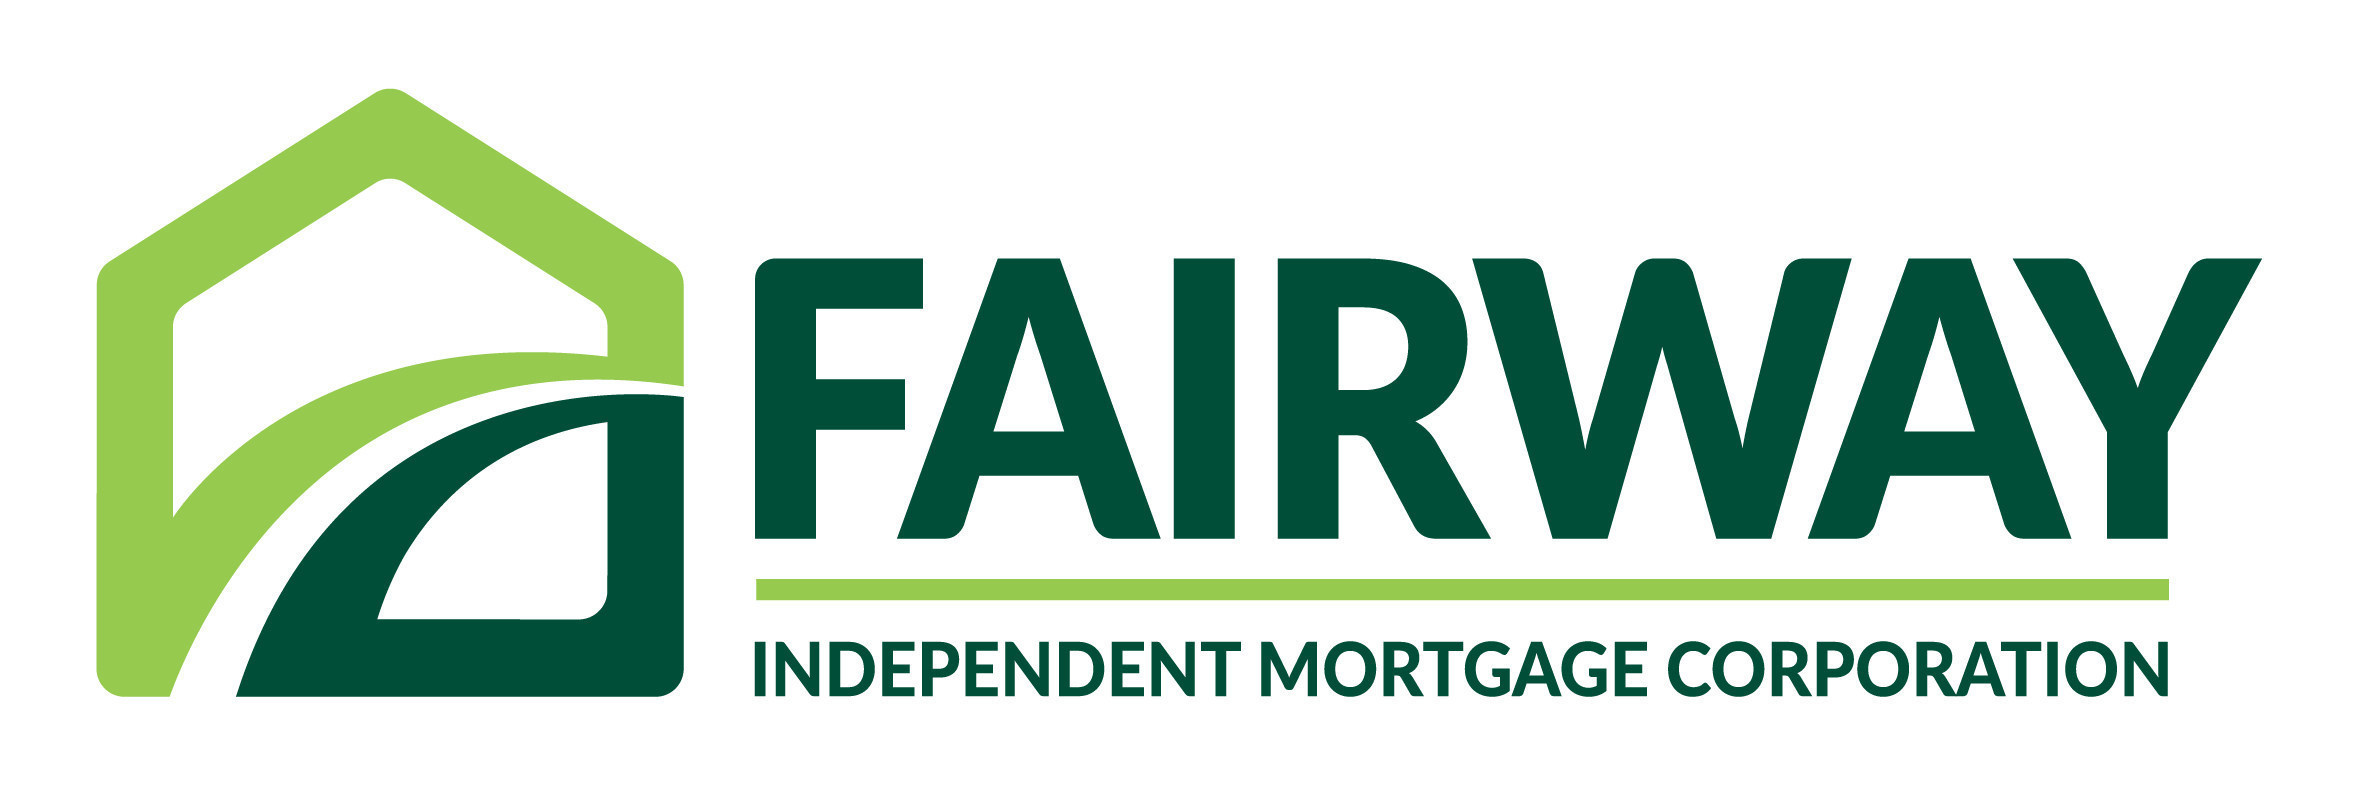 fairway-independent-mortgage-logo